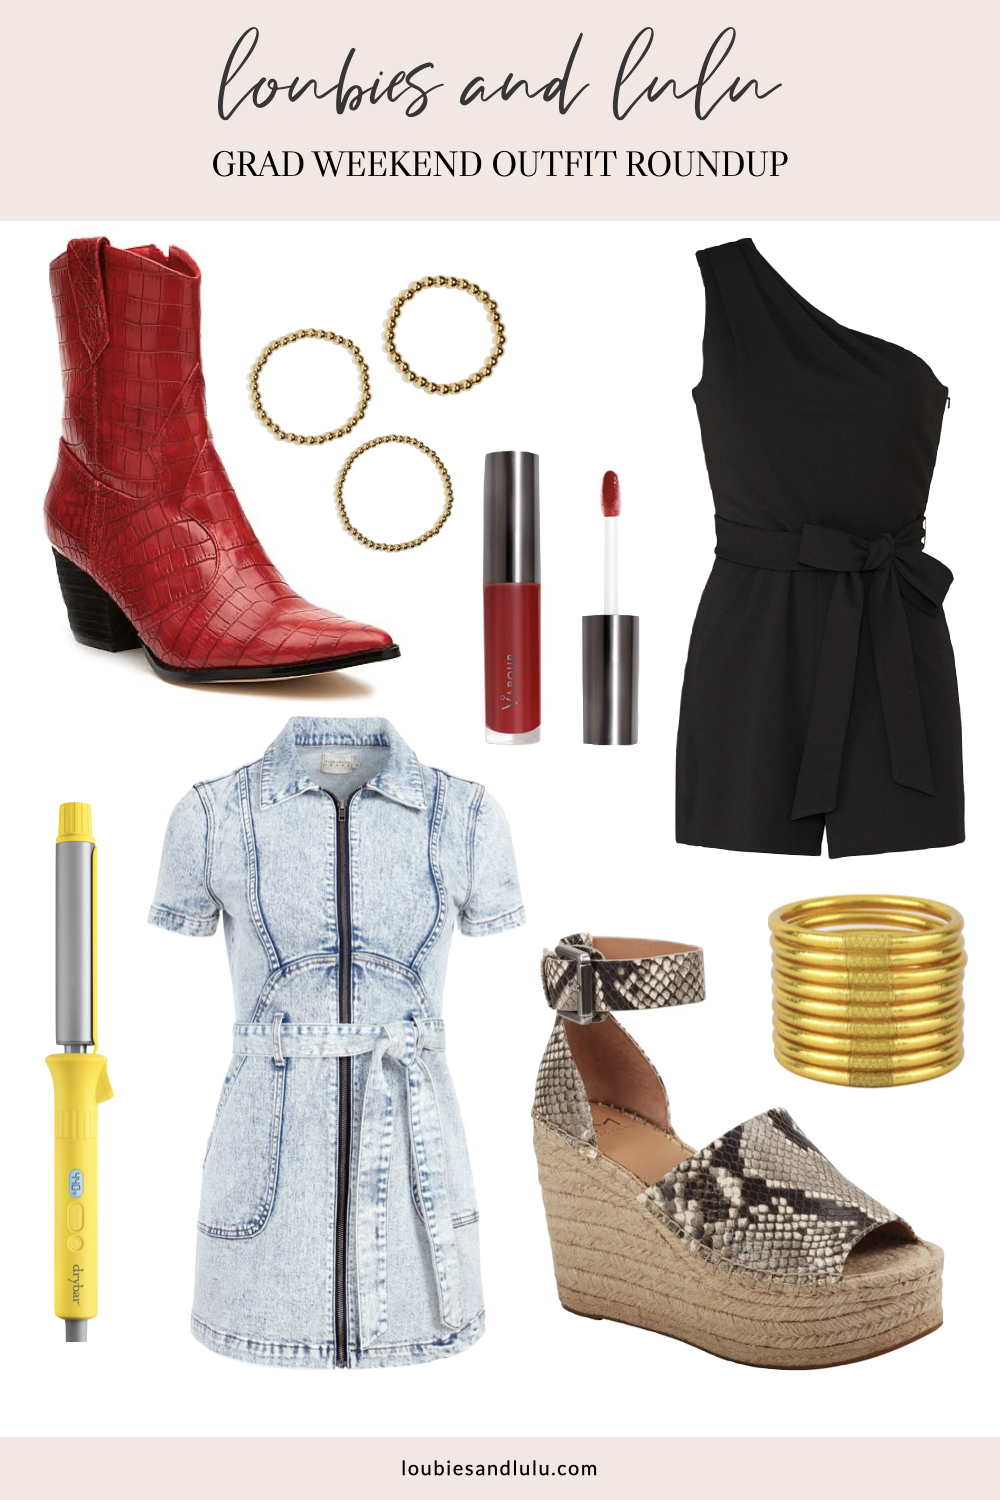 Graduation party outfit, what to wear to casual graduation party